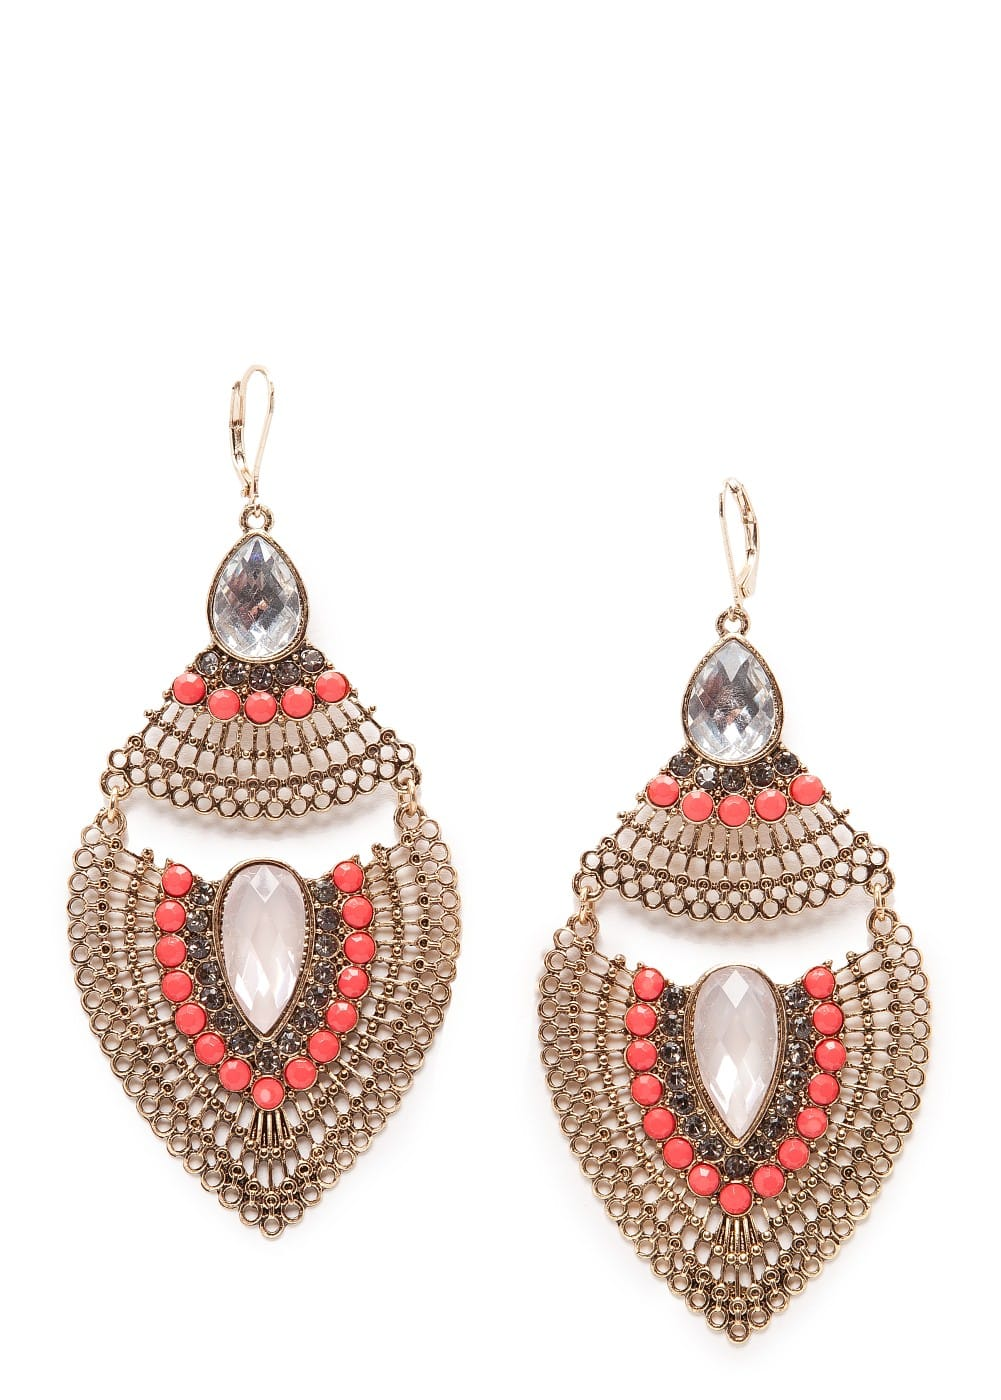 Embellished maxi-earrings